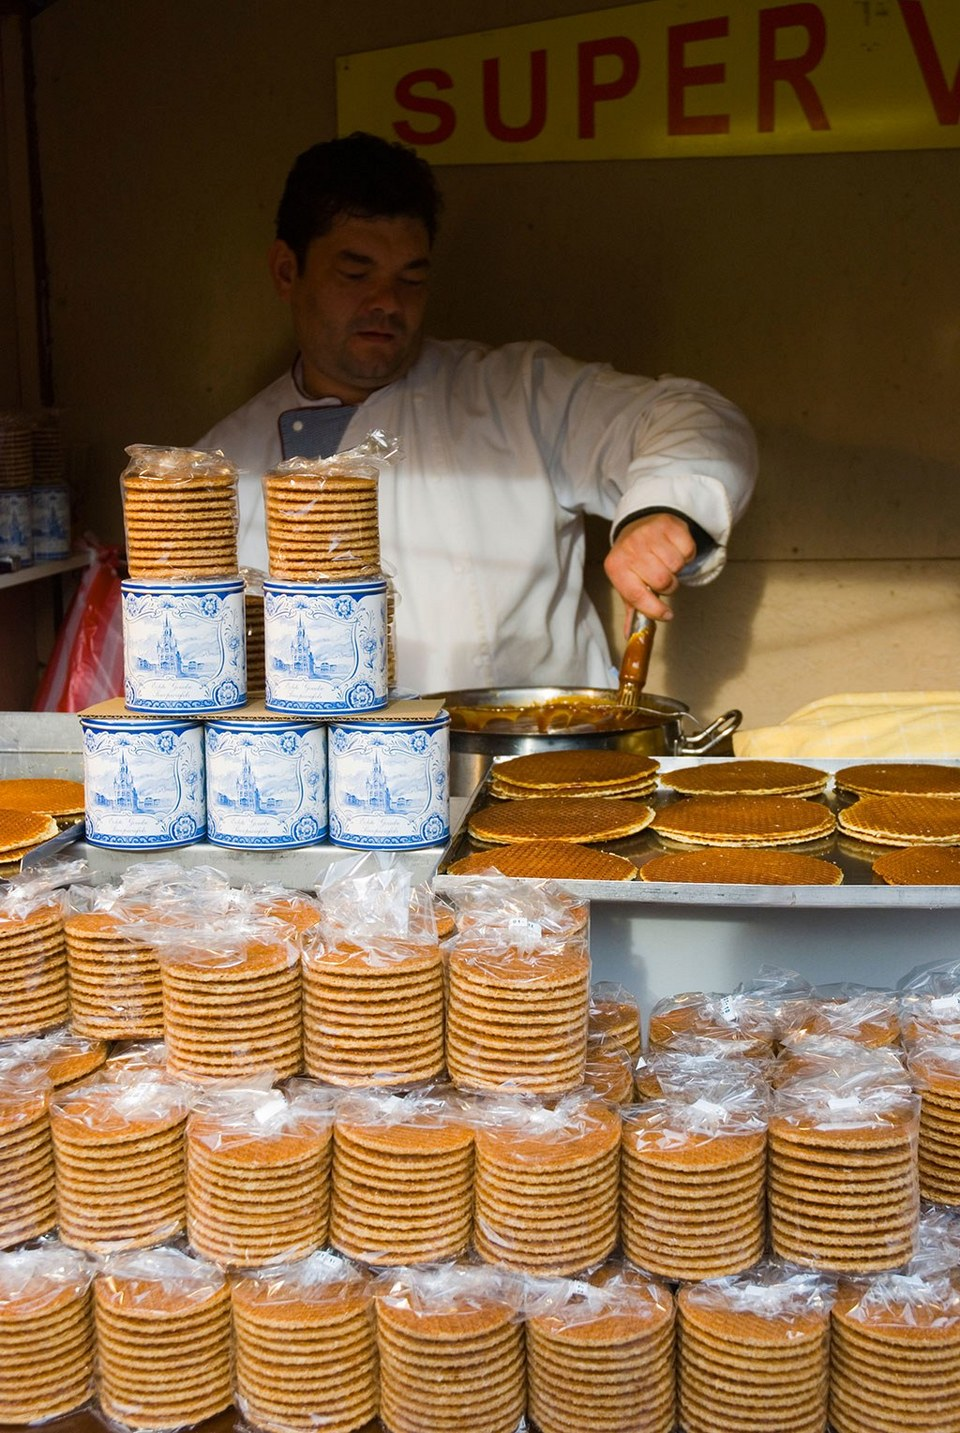 1-stroopwafel-peter-eric-forsberg-alamy,amsterdam blog,amsterdam travel blog,amsterdam travel guide blog,amsterdam city guide